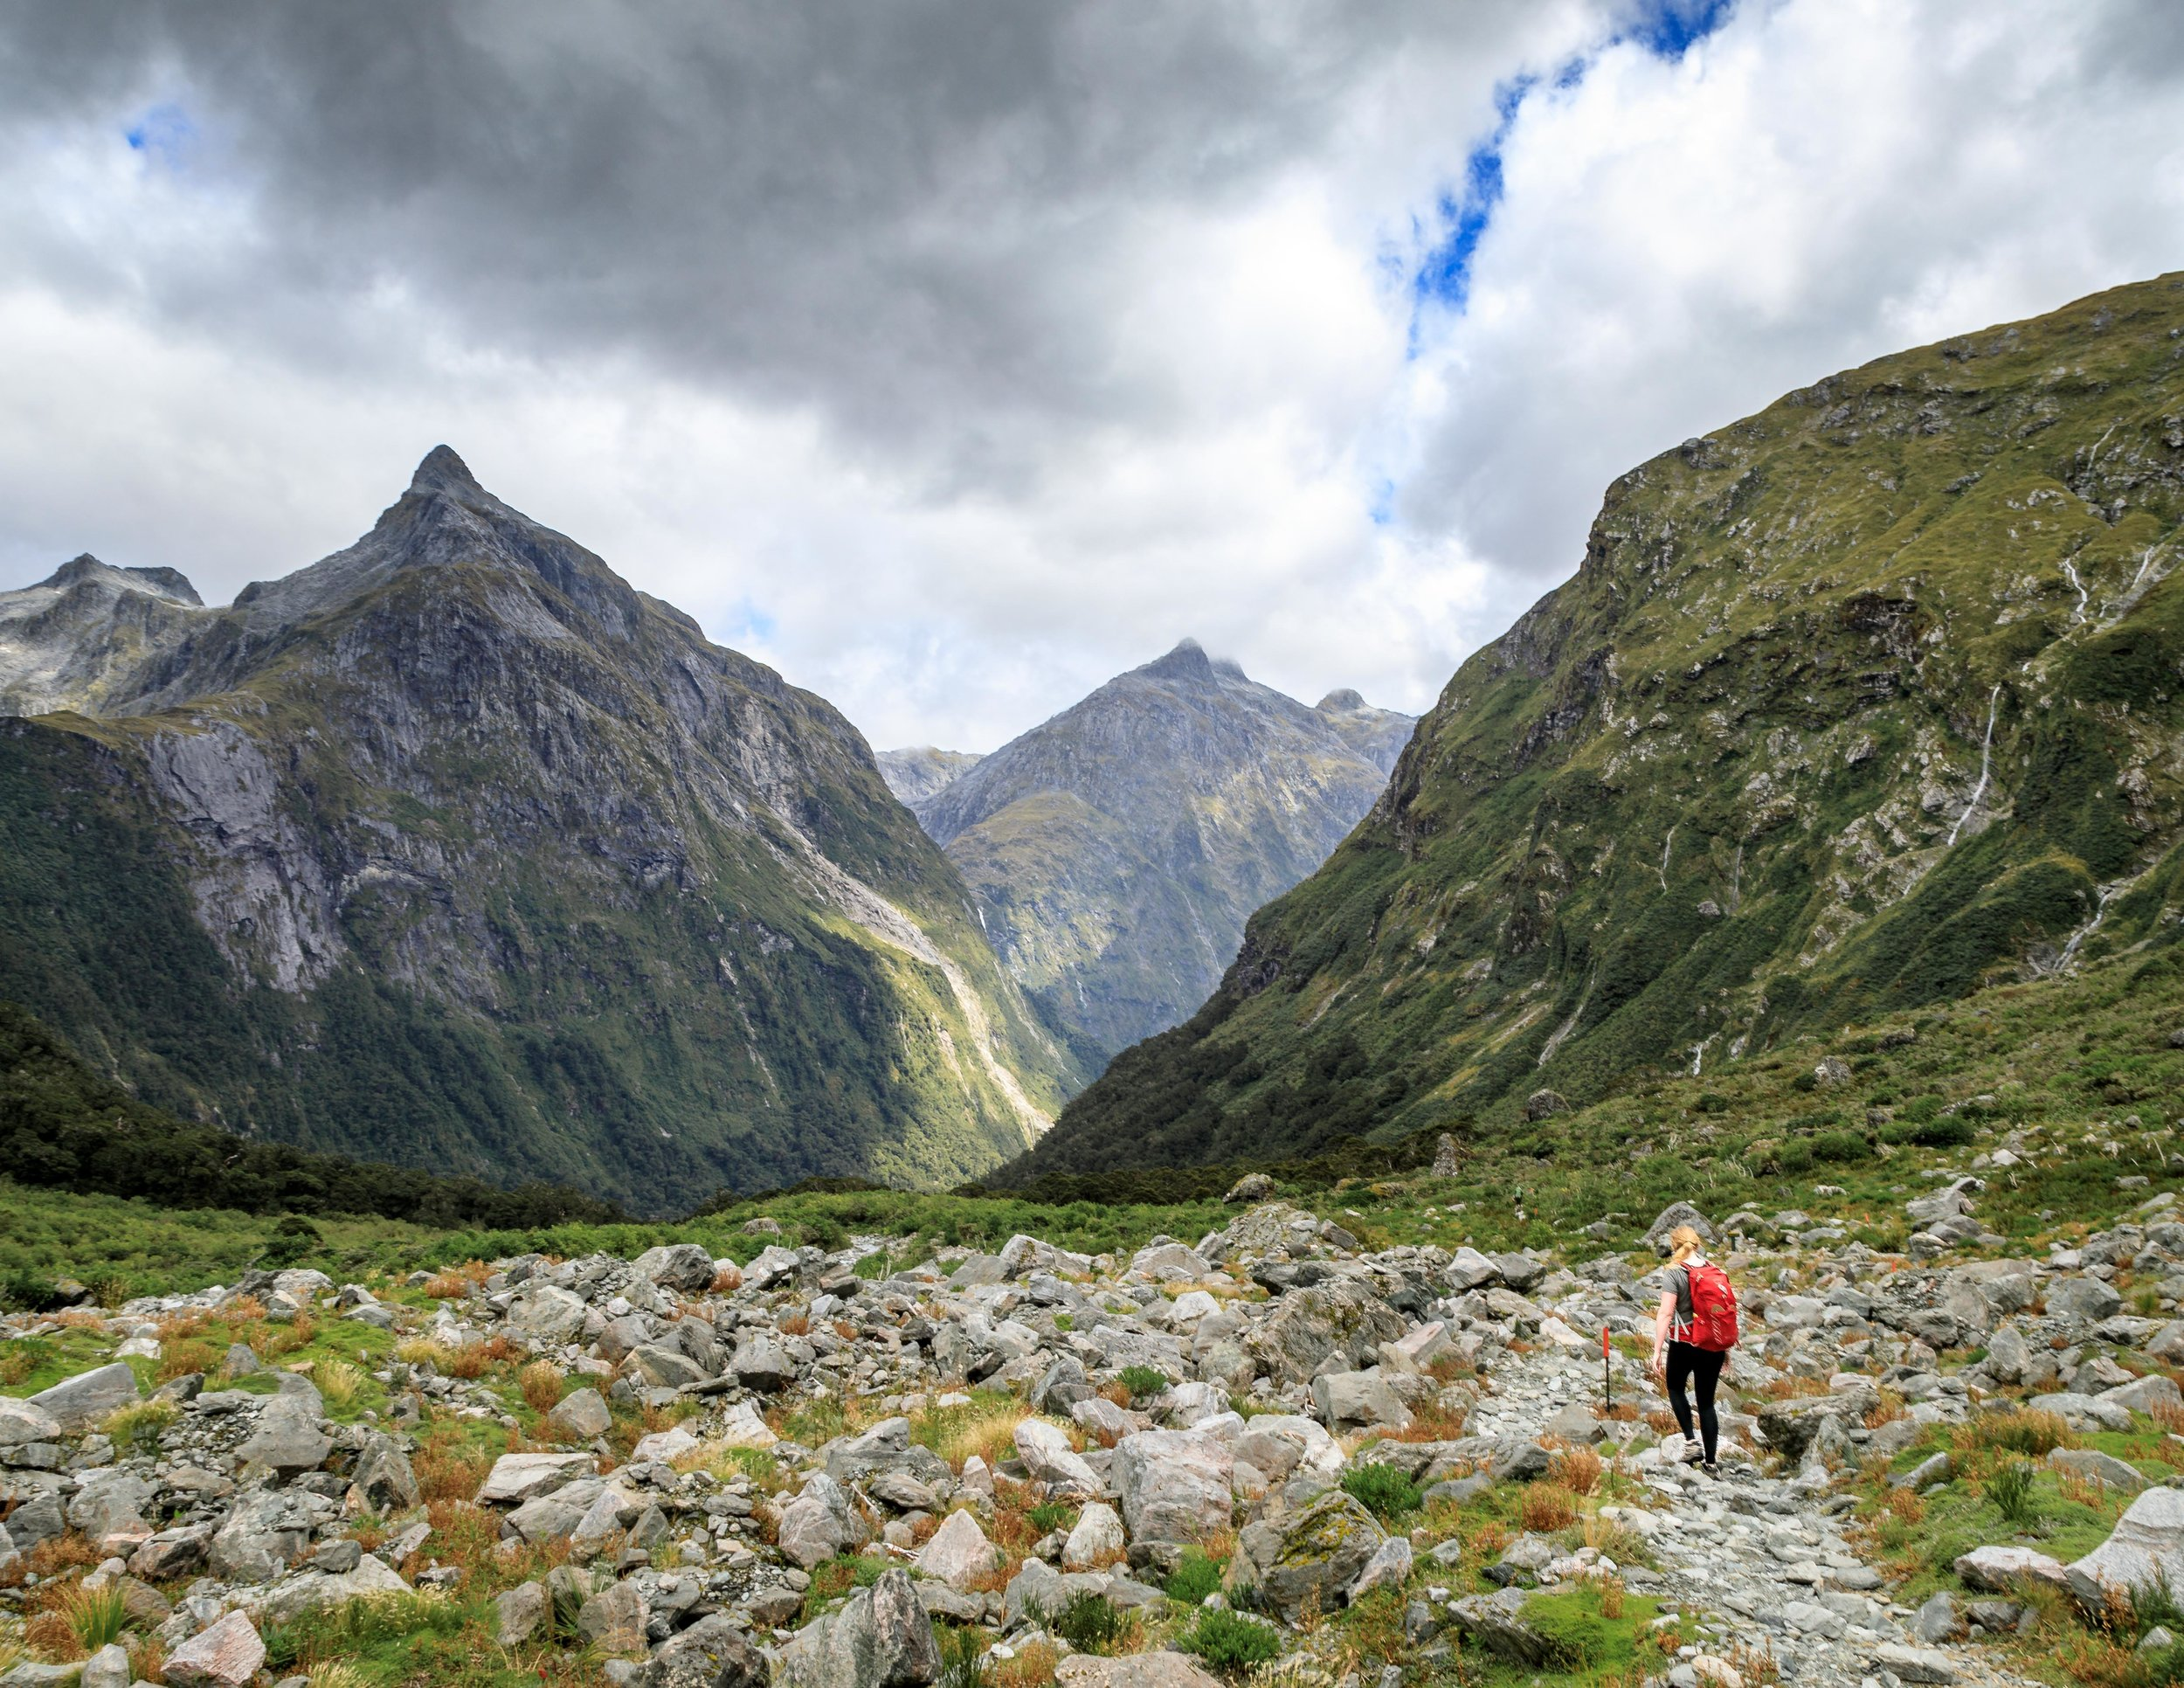 The boulder patch after the MacKinnon Pass, Milford Track